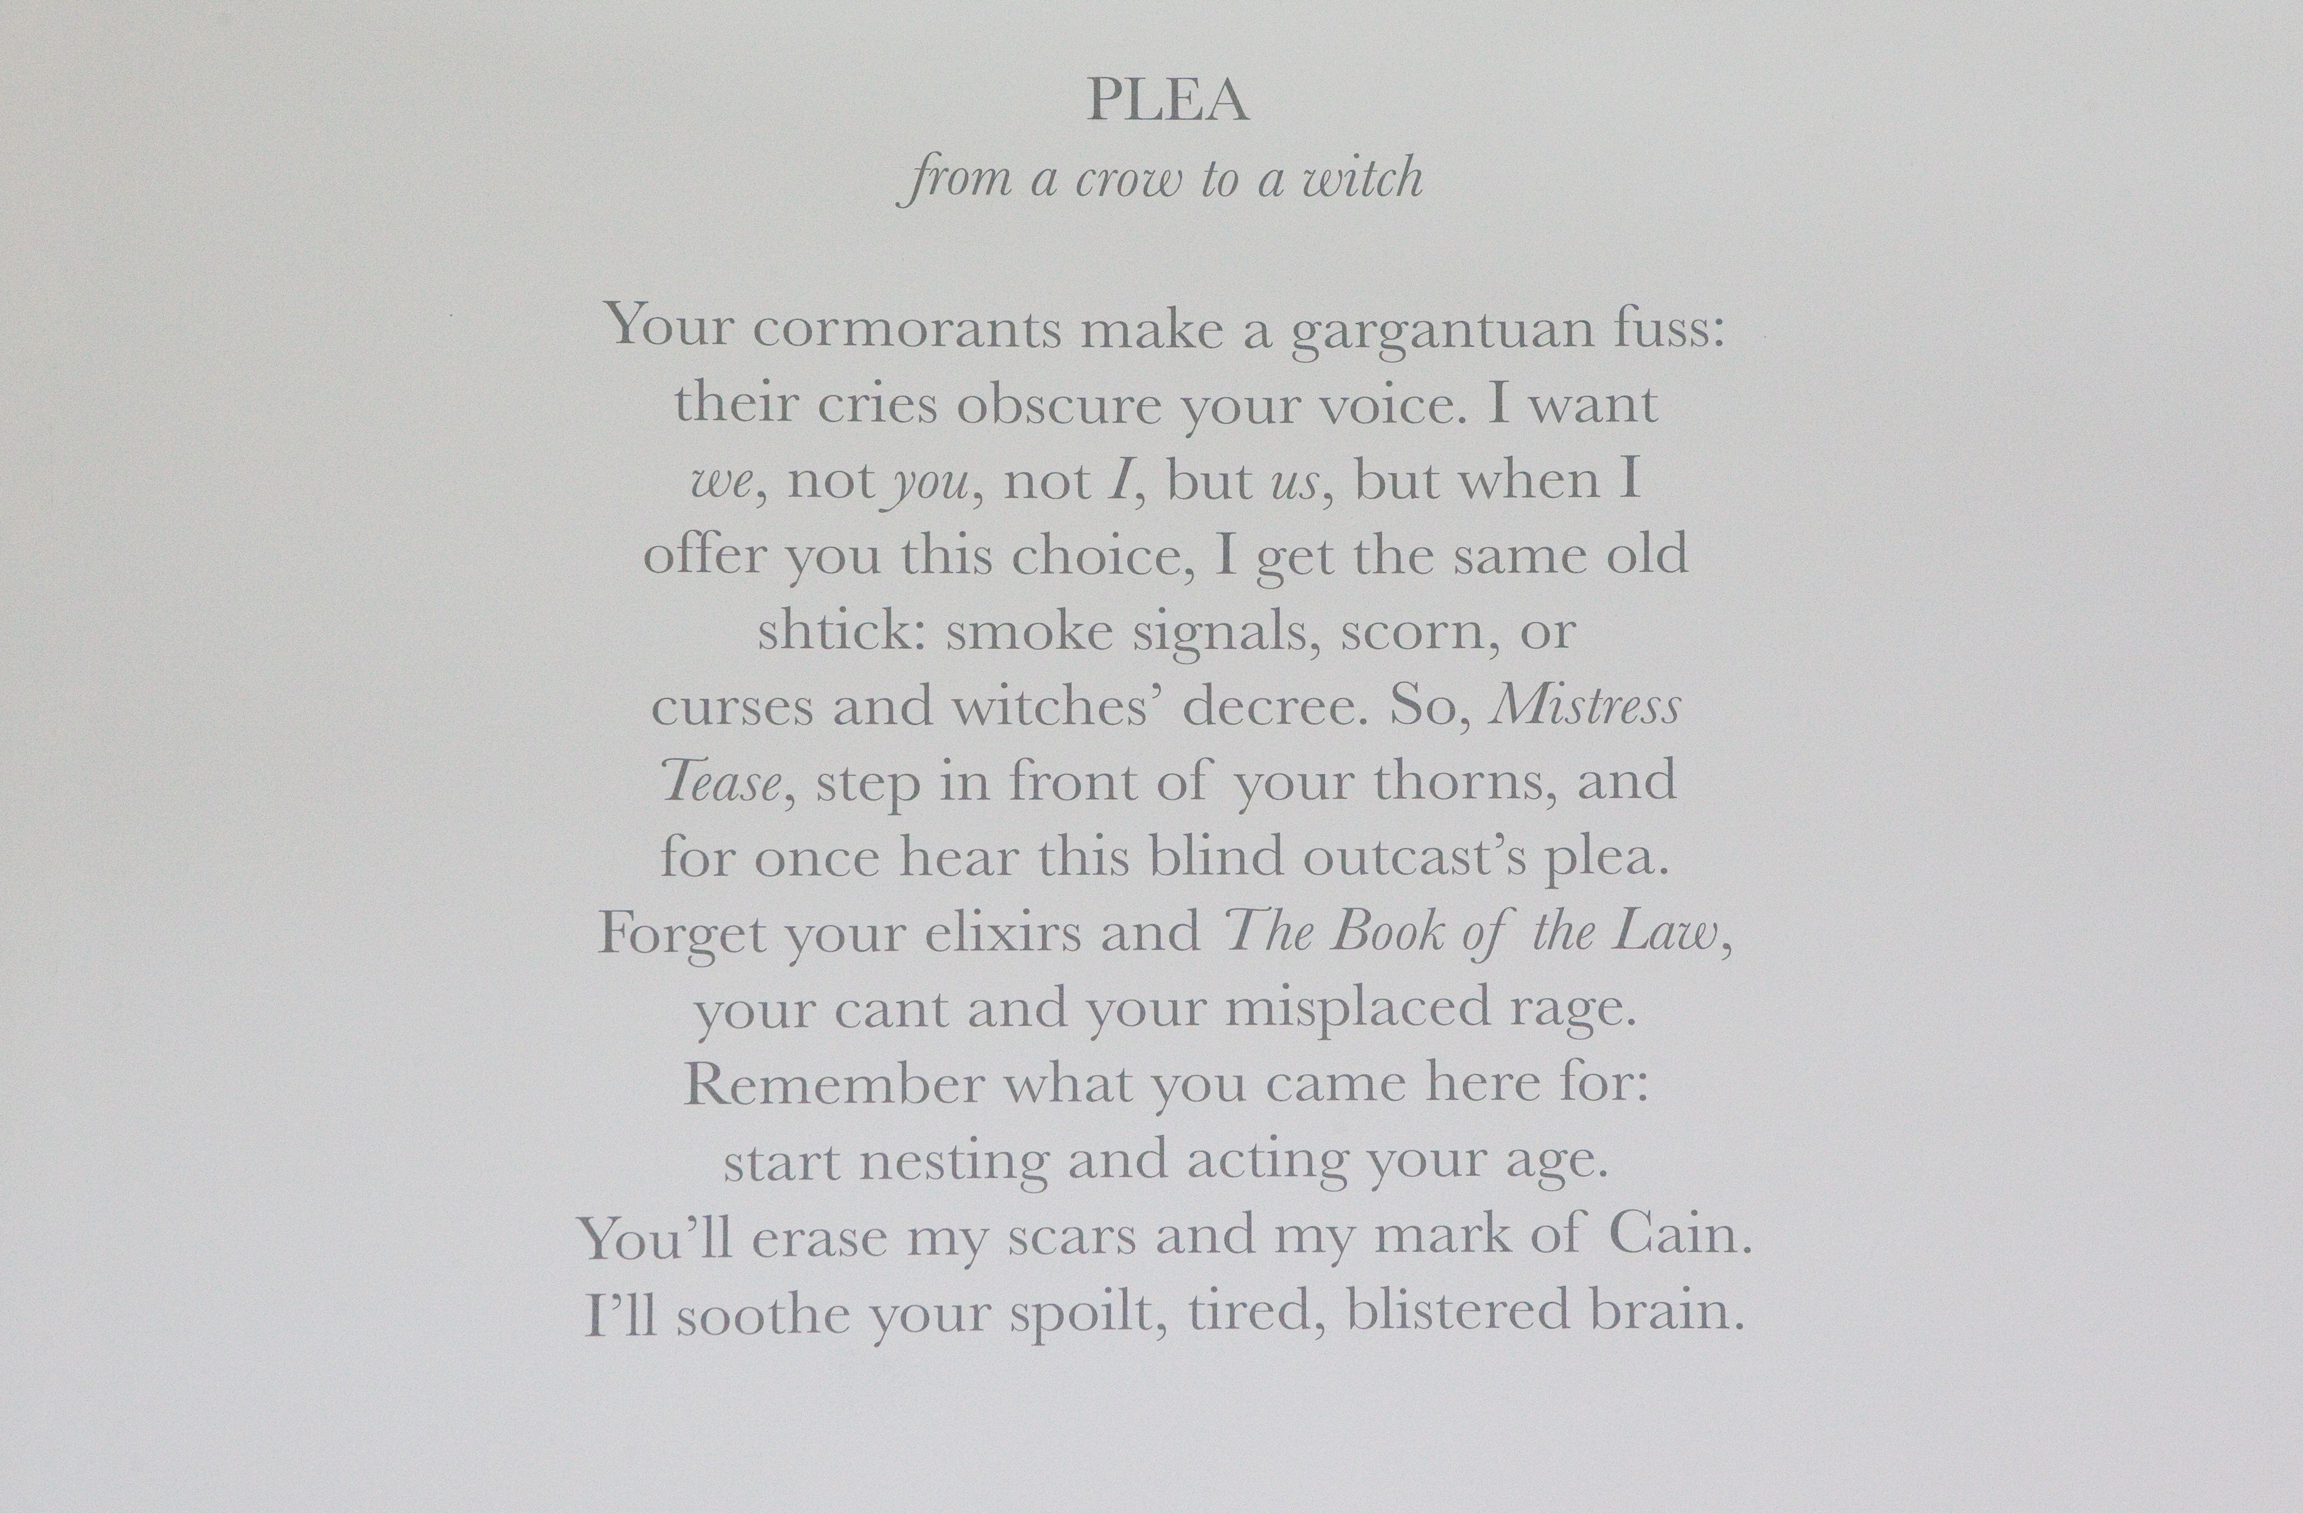 2 Poem from Plea